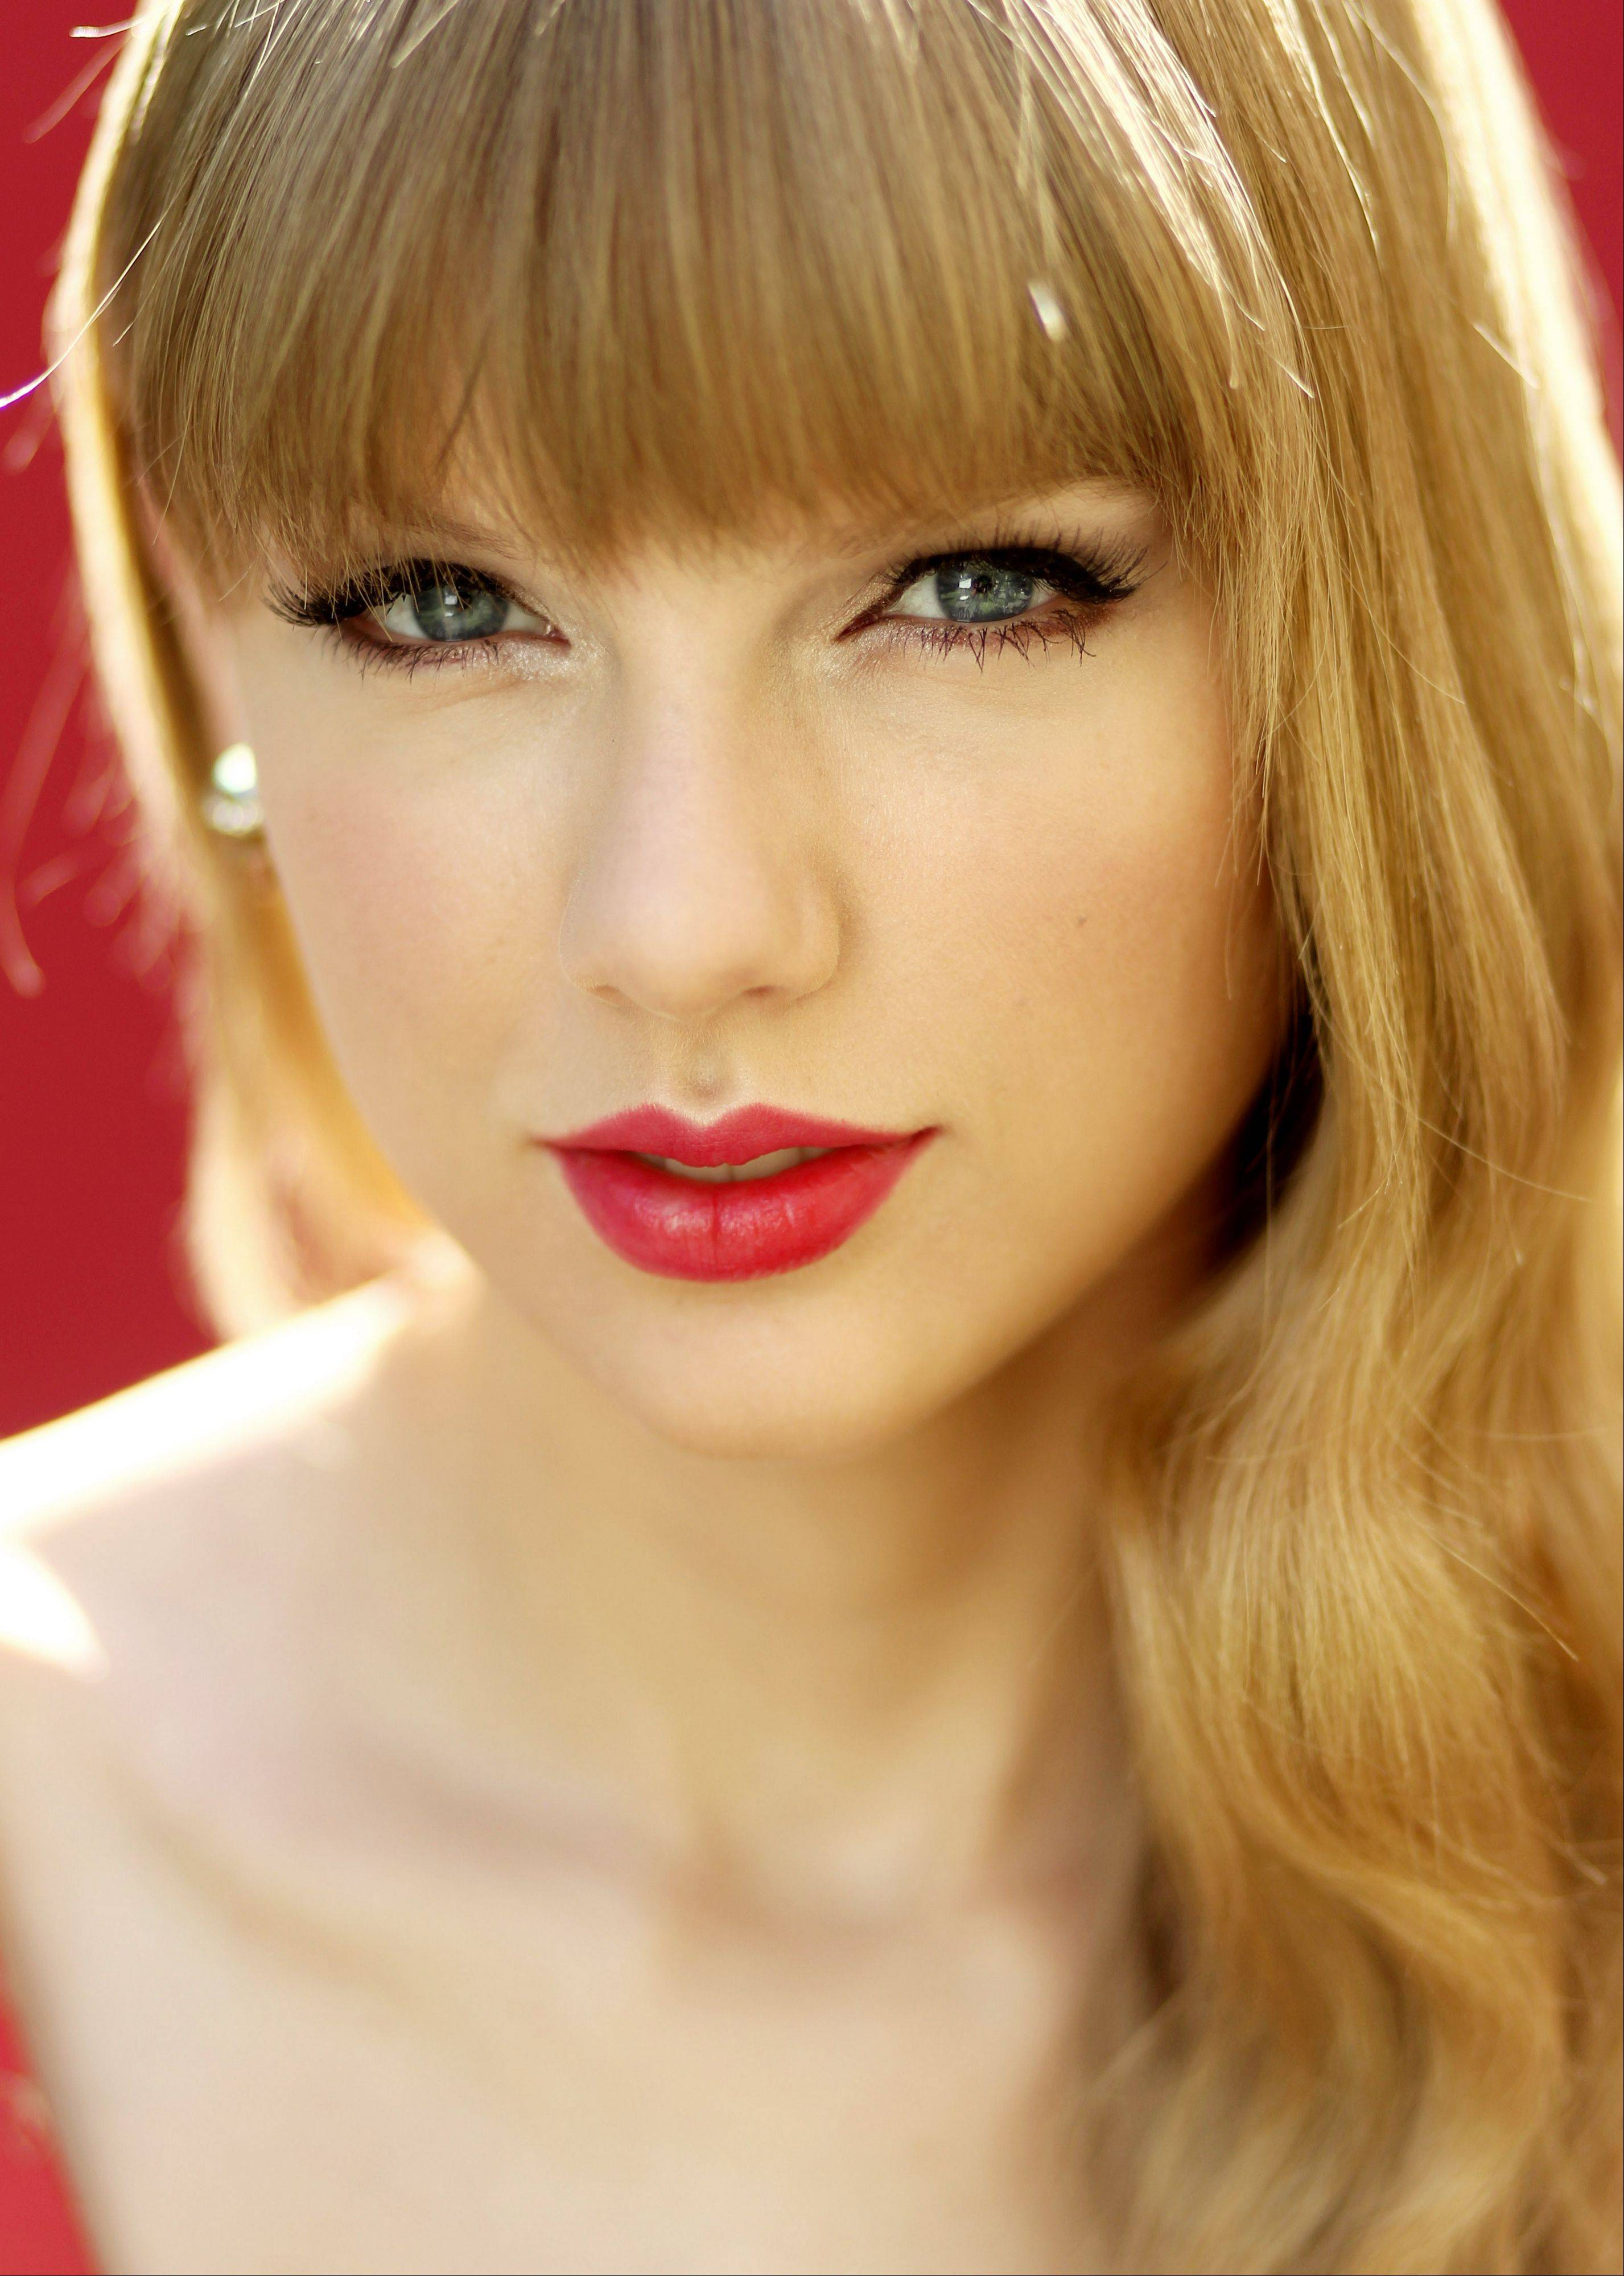 Taylor Swift has released her new album, �Red.�